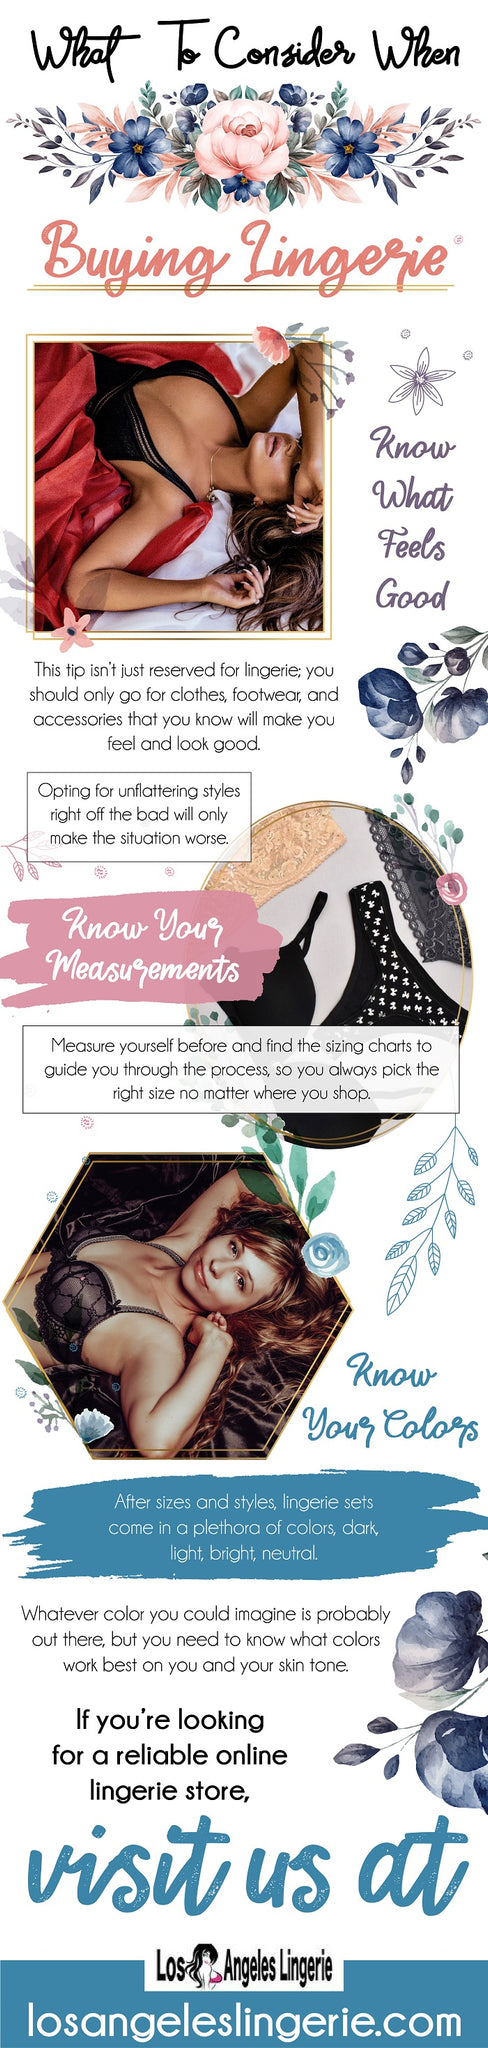 Here are few tips to remember before buying a lingerie.